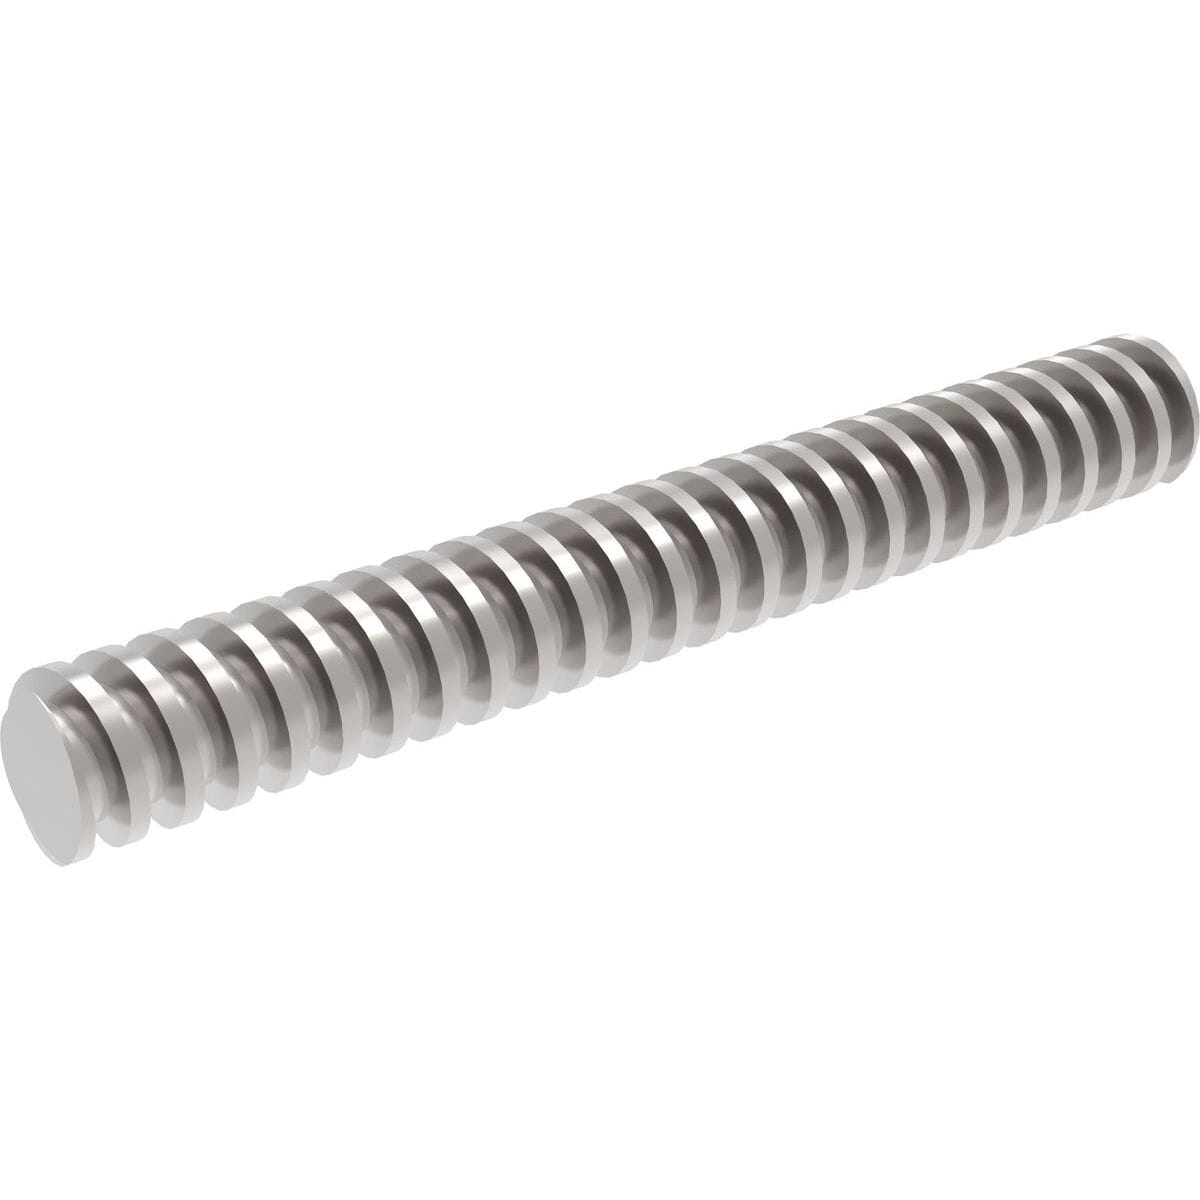 TR28x5 (28mm x 5mm Lead) x 260mm Trapezoidal Lead Screws - Marine Stainless Steel (A4)